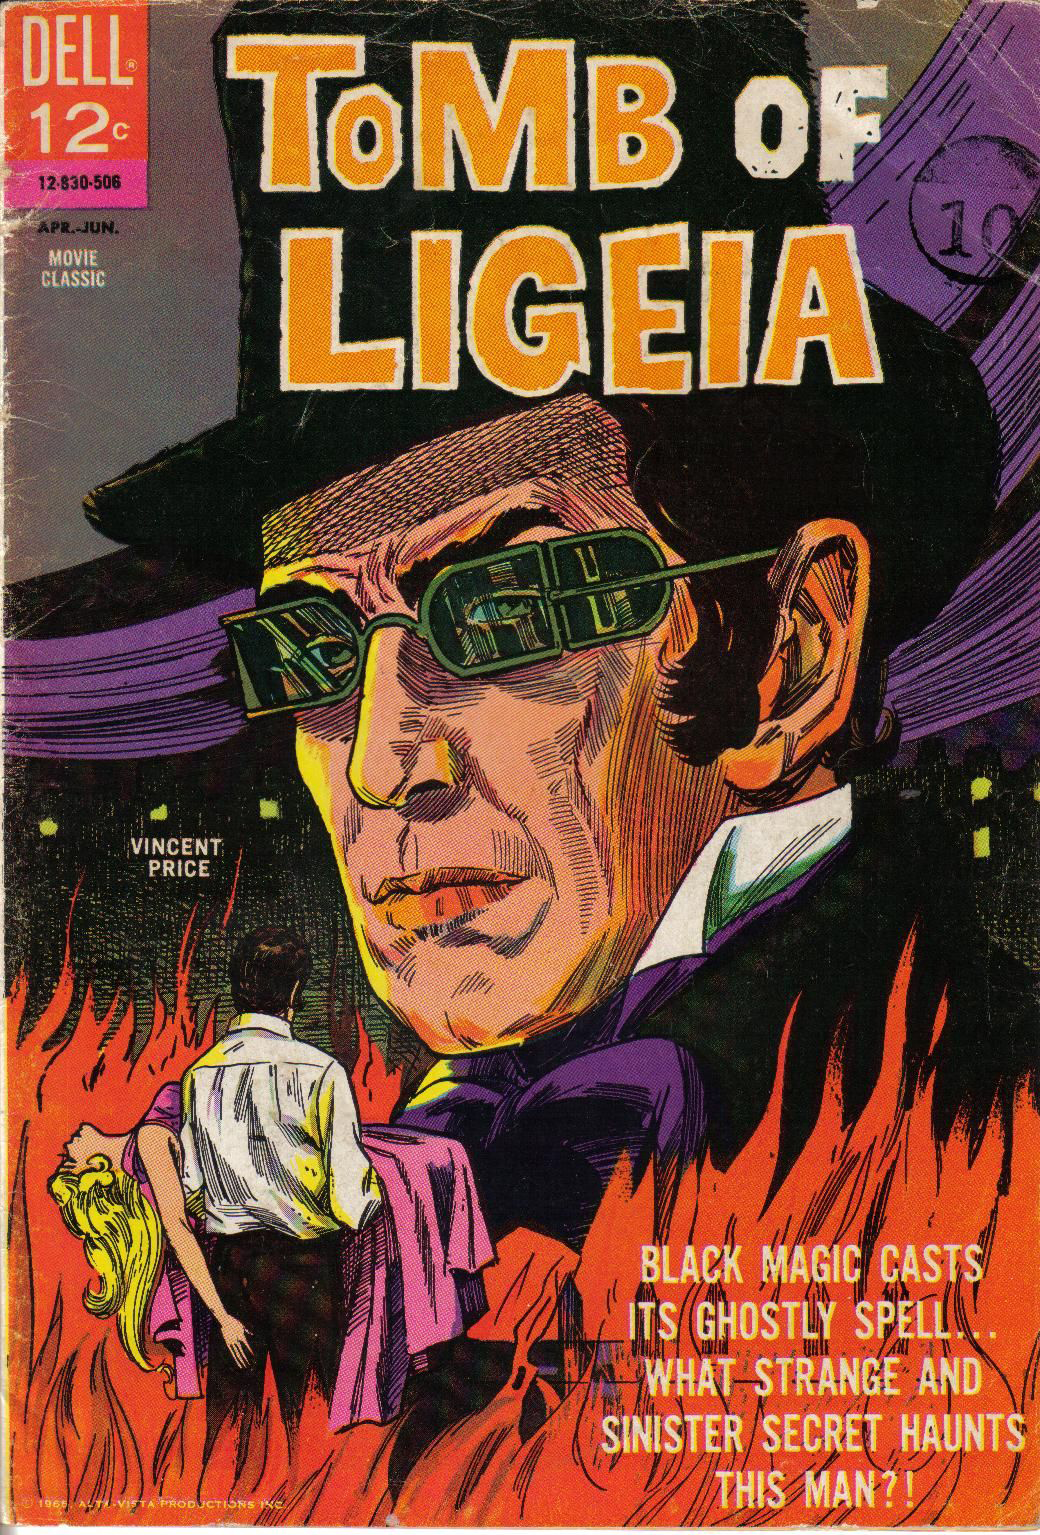 Vincent Price as a comic book character sporting Richardson style sunglasses